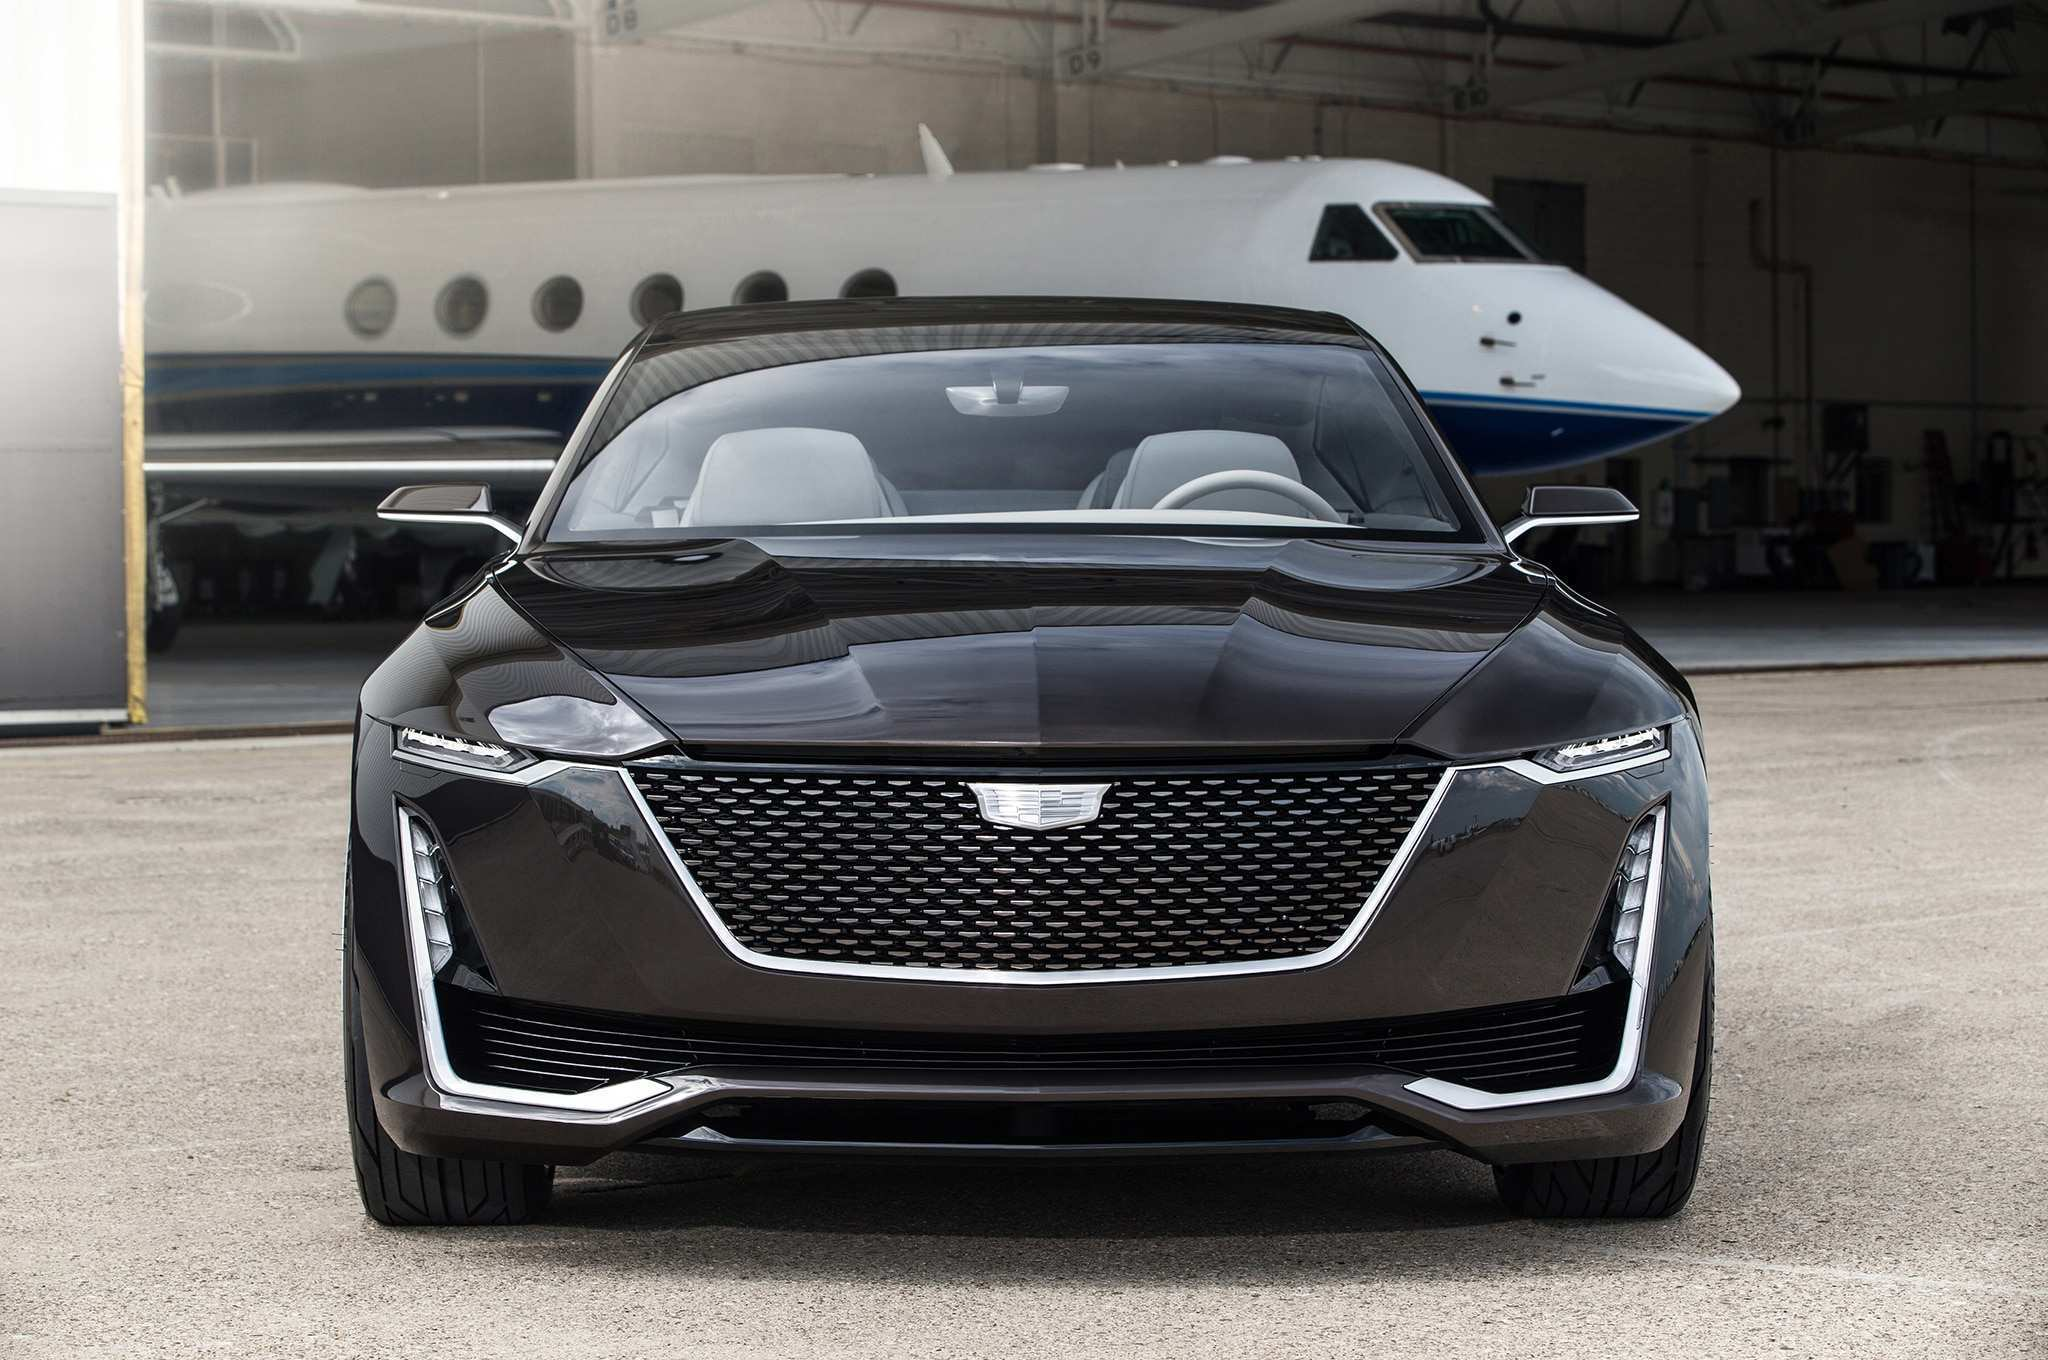 23 Great 2019 Cadillac Diesel Picture by 2019 Cadillac Diesel